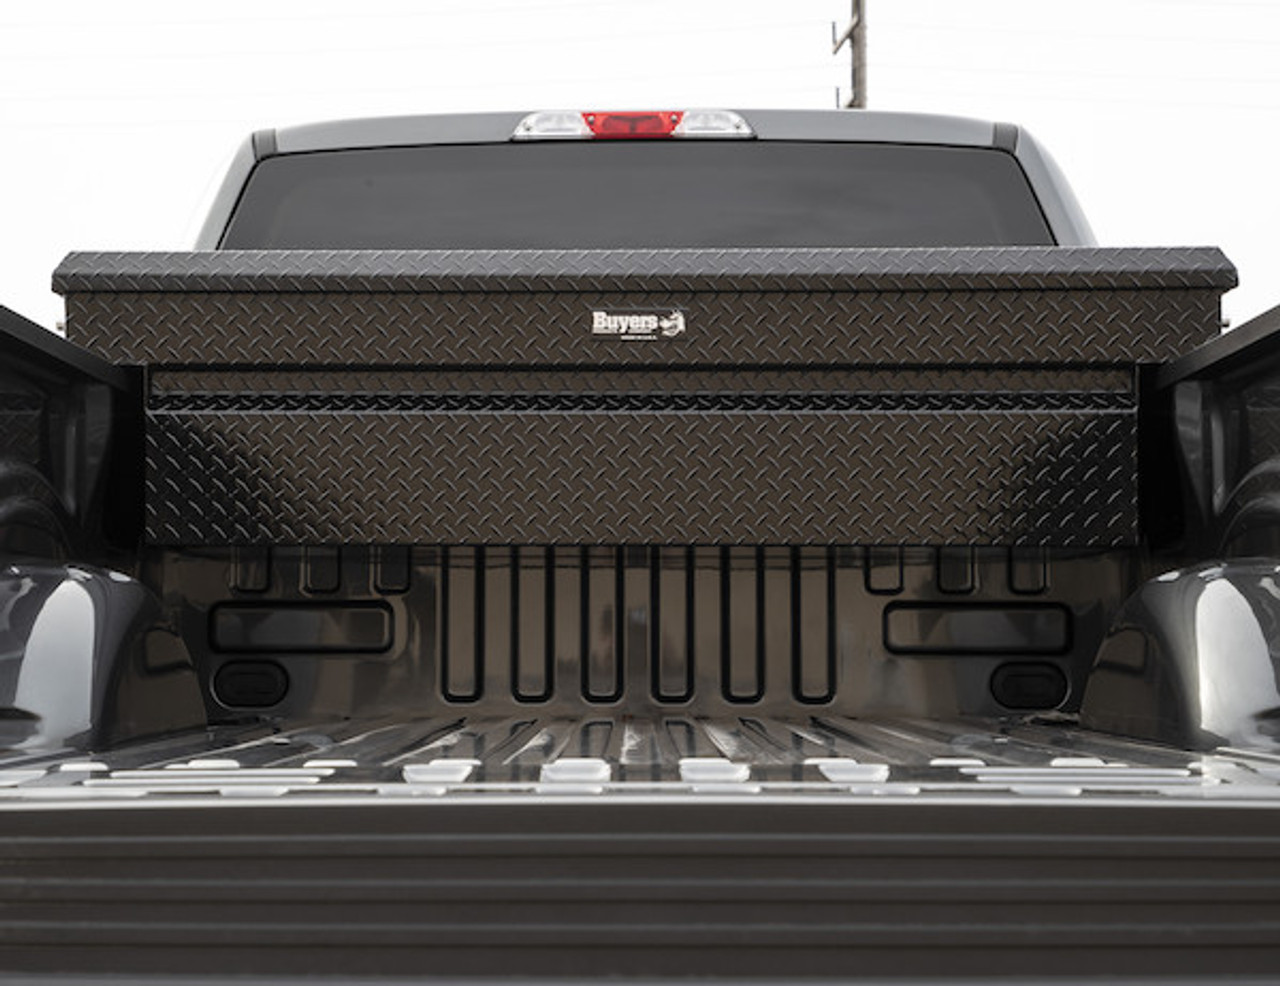 "1729425 BUYERS PRODUCTS BLACK DIAMOND TREAD ALUMINUM CROSSOVER TRUCK TOOLBOX 23""HX27""DX71""W 5"